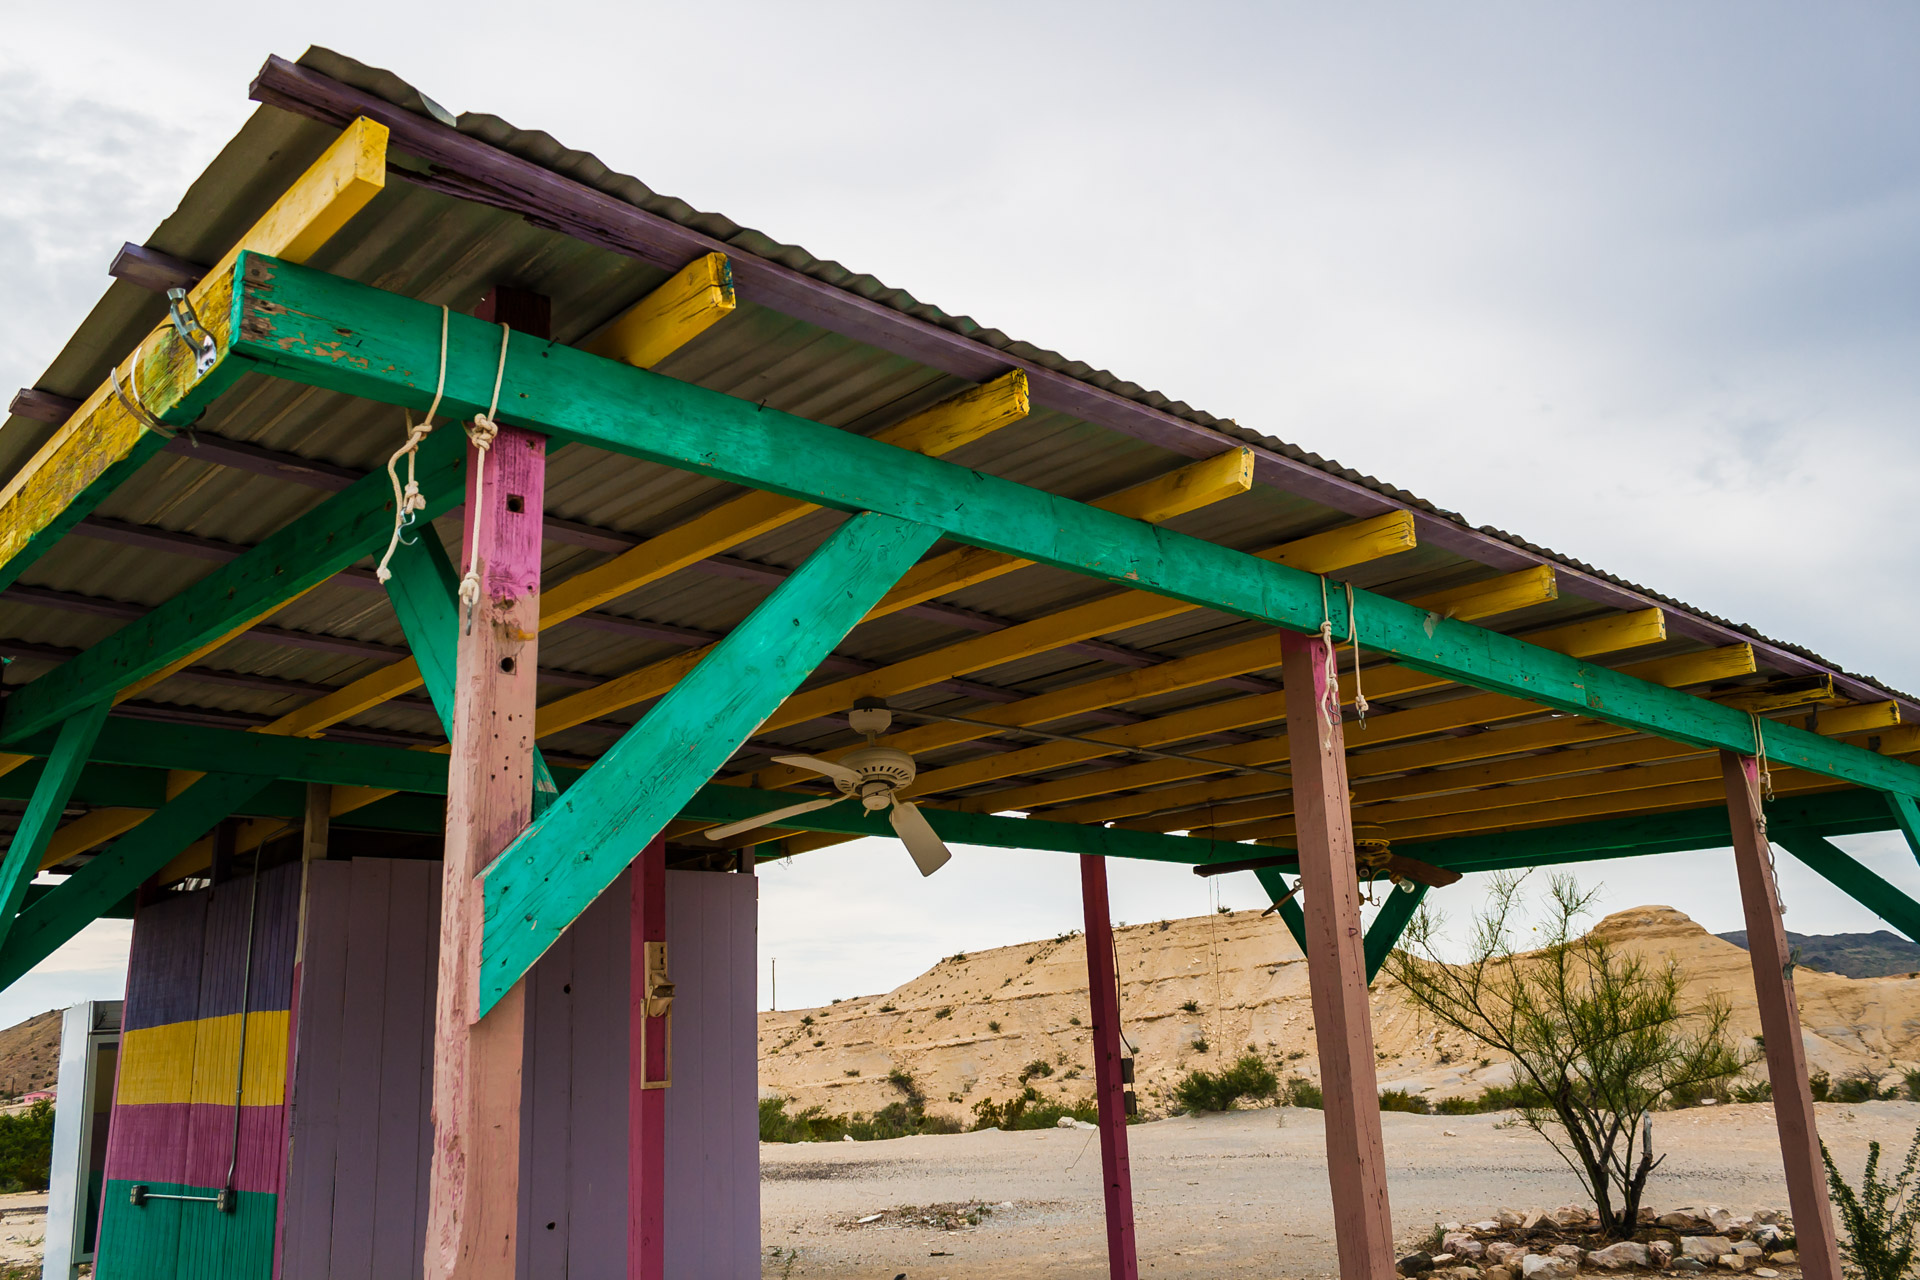 Colorful Desert Shack (roof close)